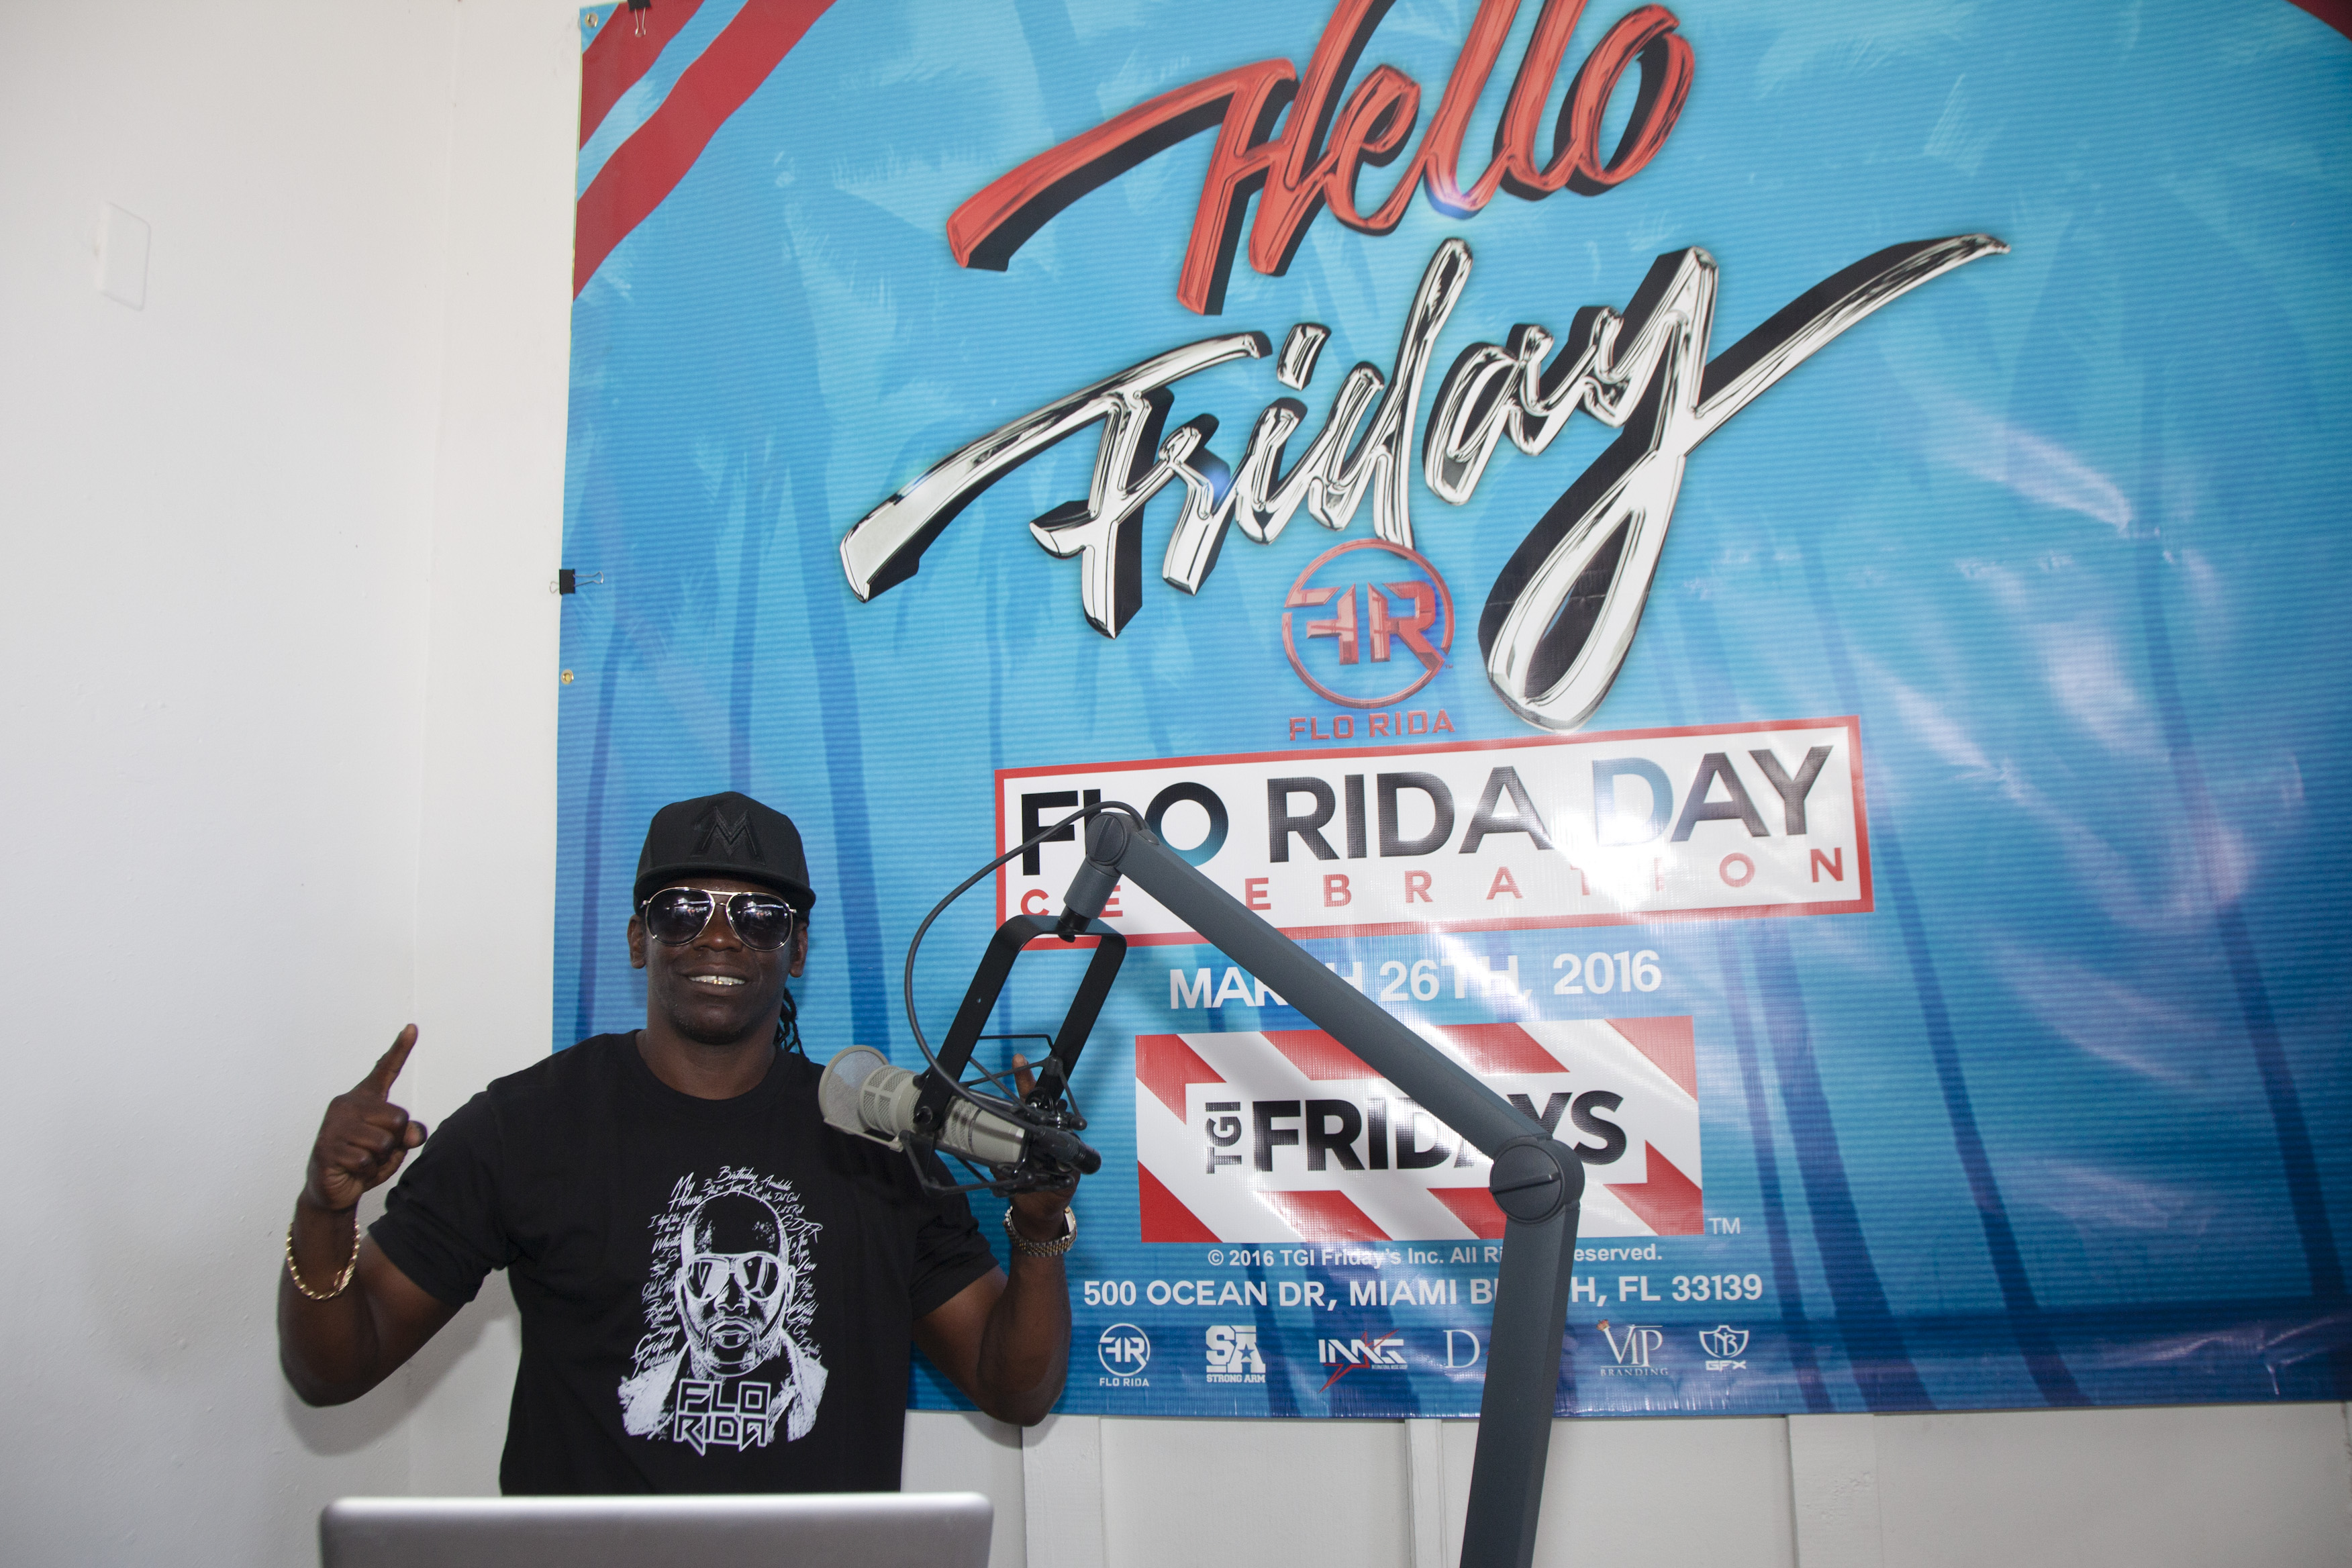 DJ at Flo Rida Day in Miami Beach - TGI Fridays